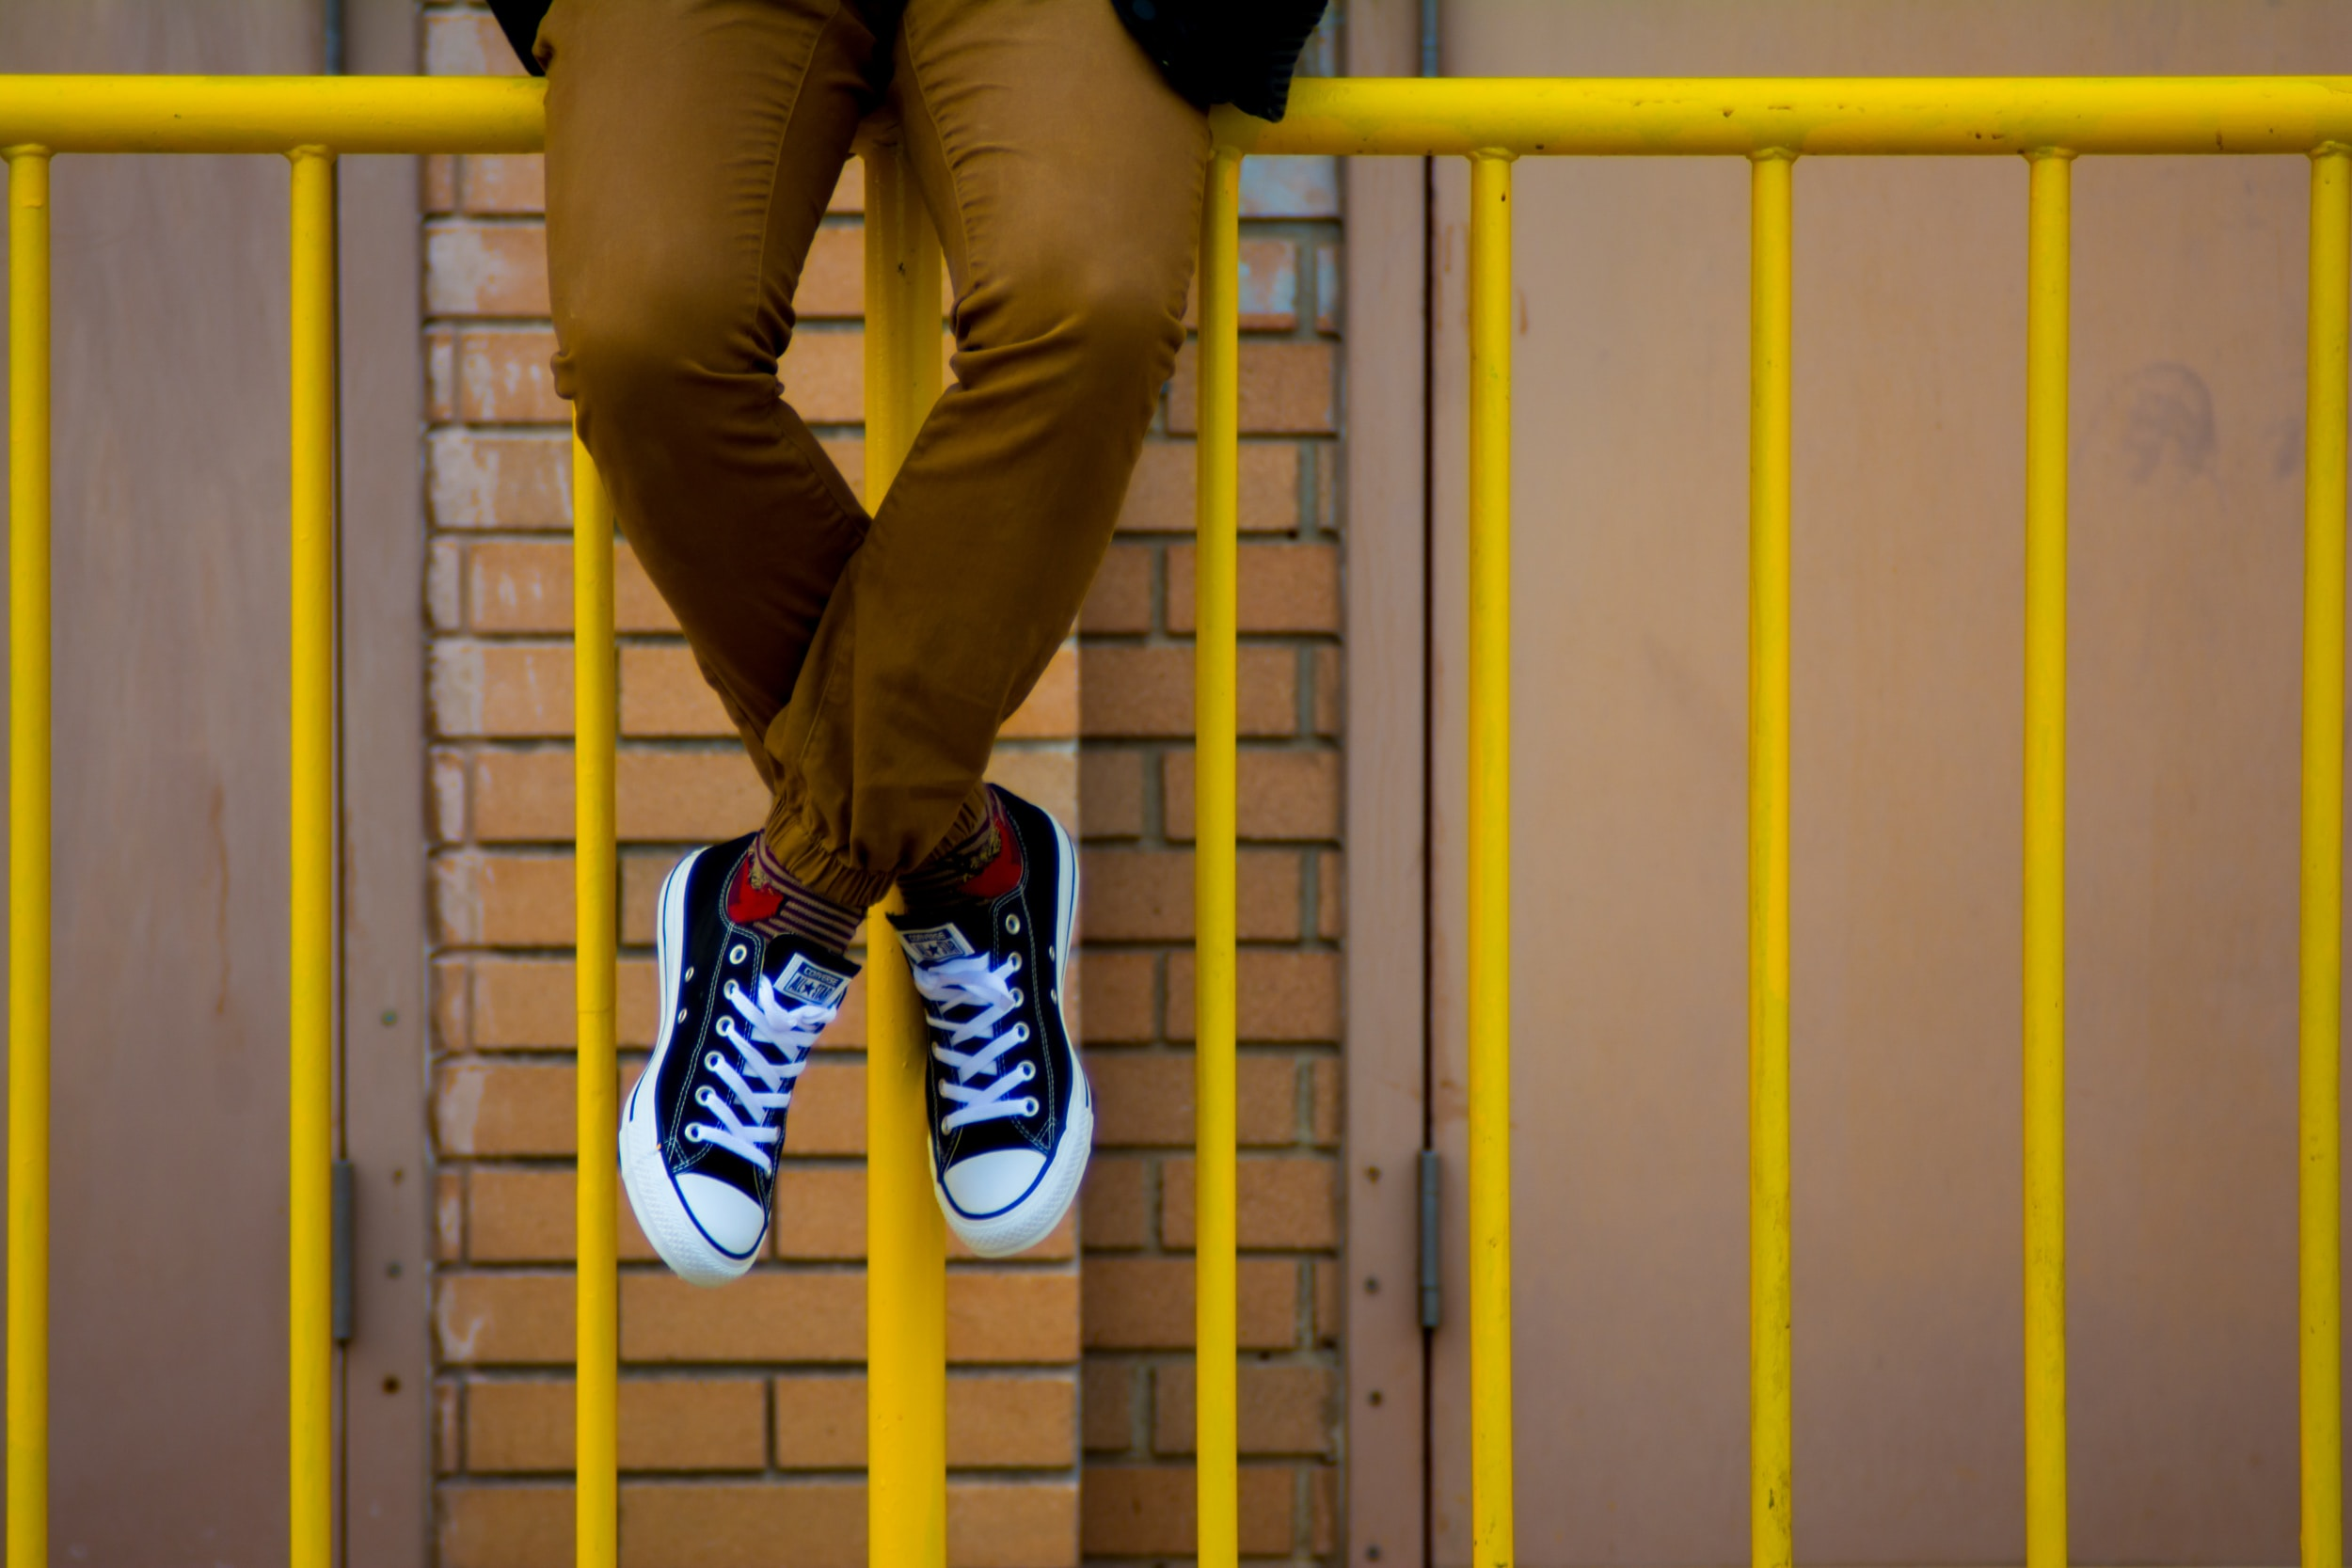 A student sits on a yellow railing.